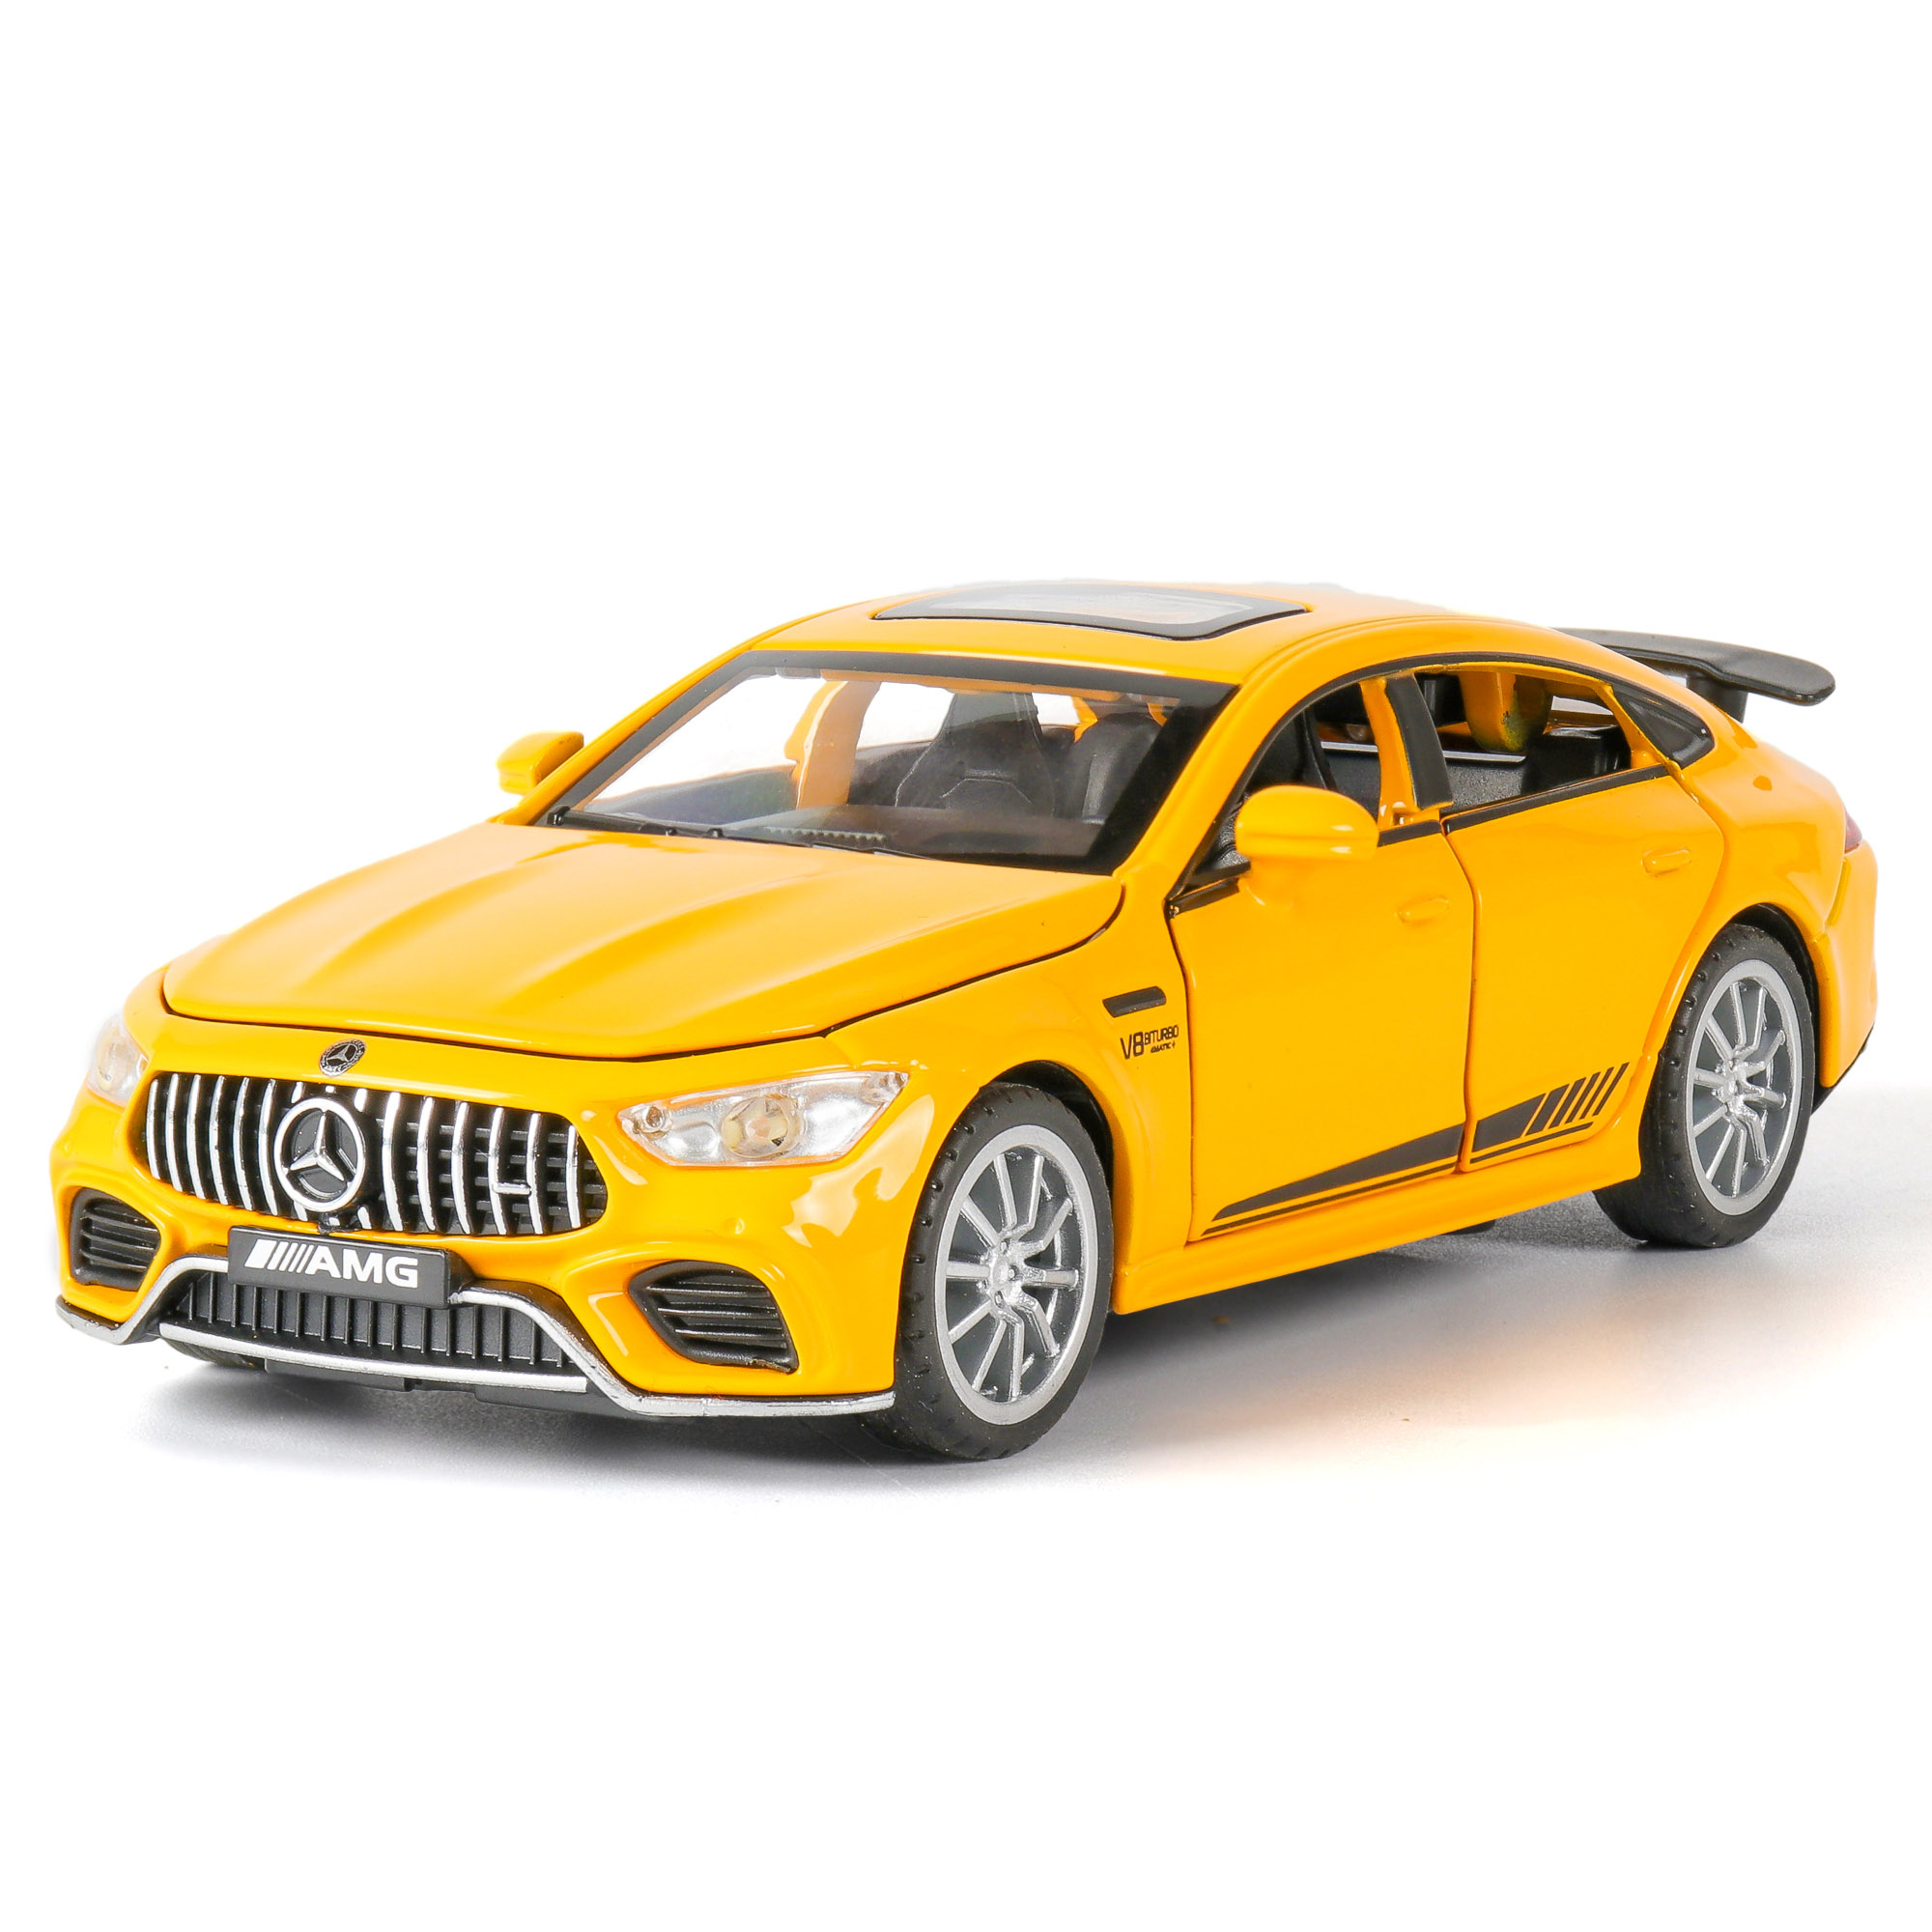 1:32 Car Model Mercedes AMG GT63 Diecasts Toy Vehicles Alloy Racing Sports Sound And Light Pull Back Wheel For Children Gifts